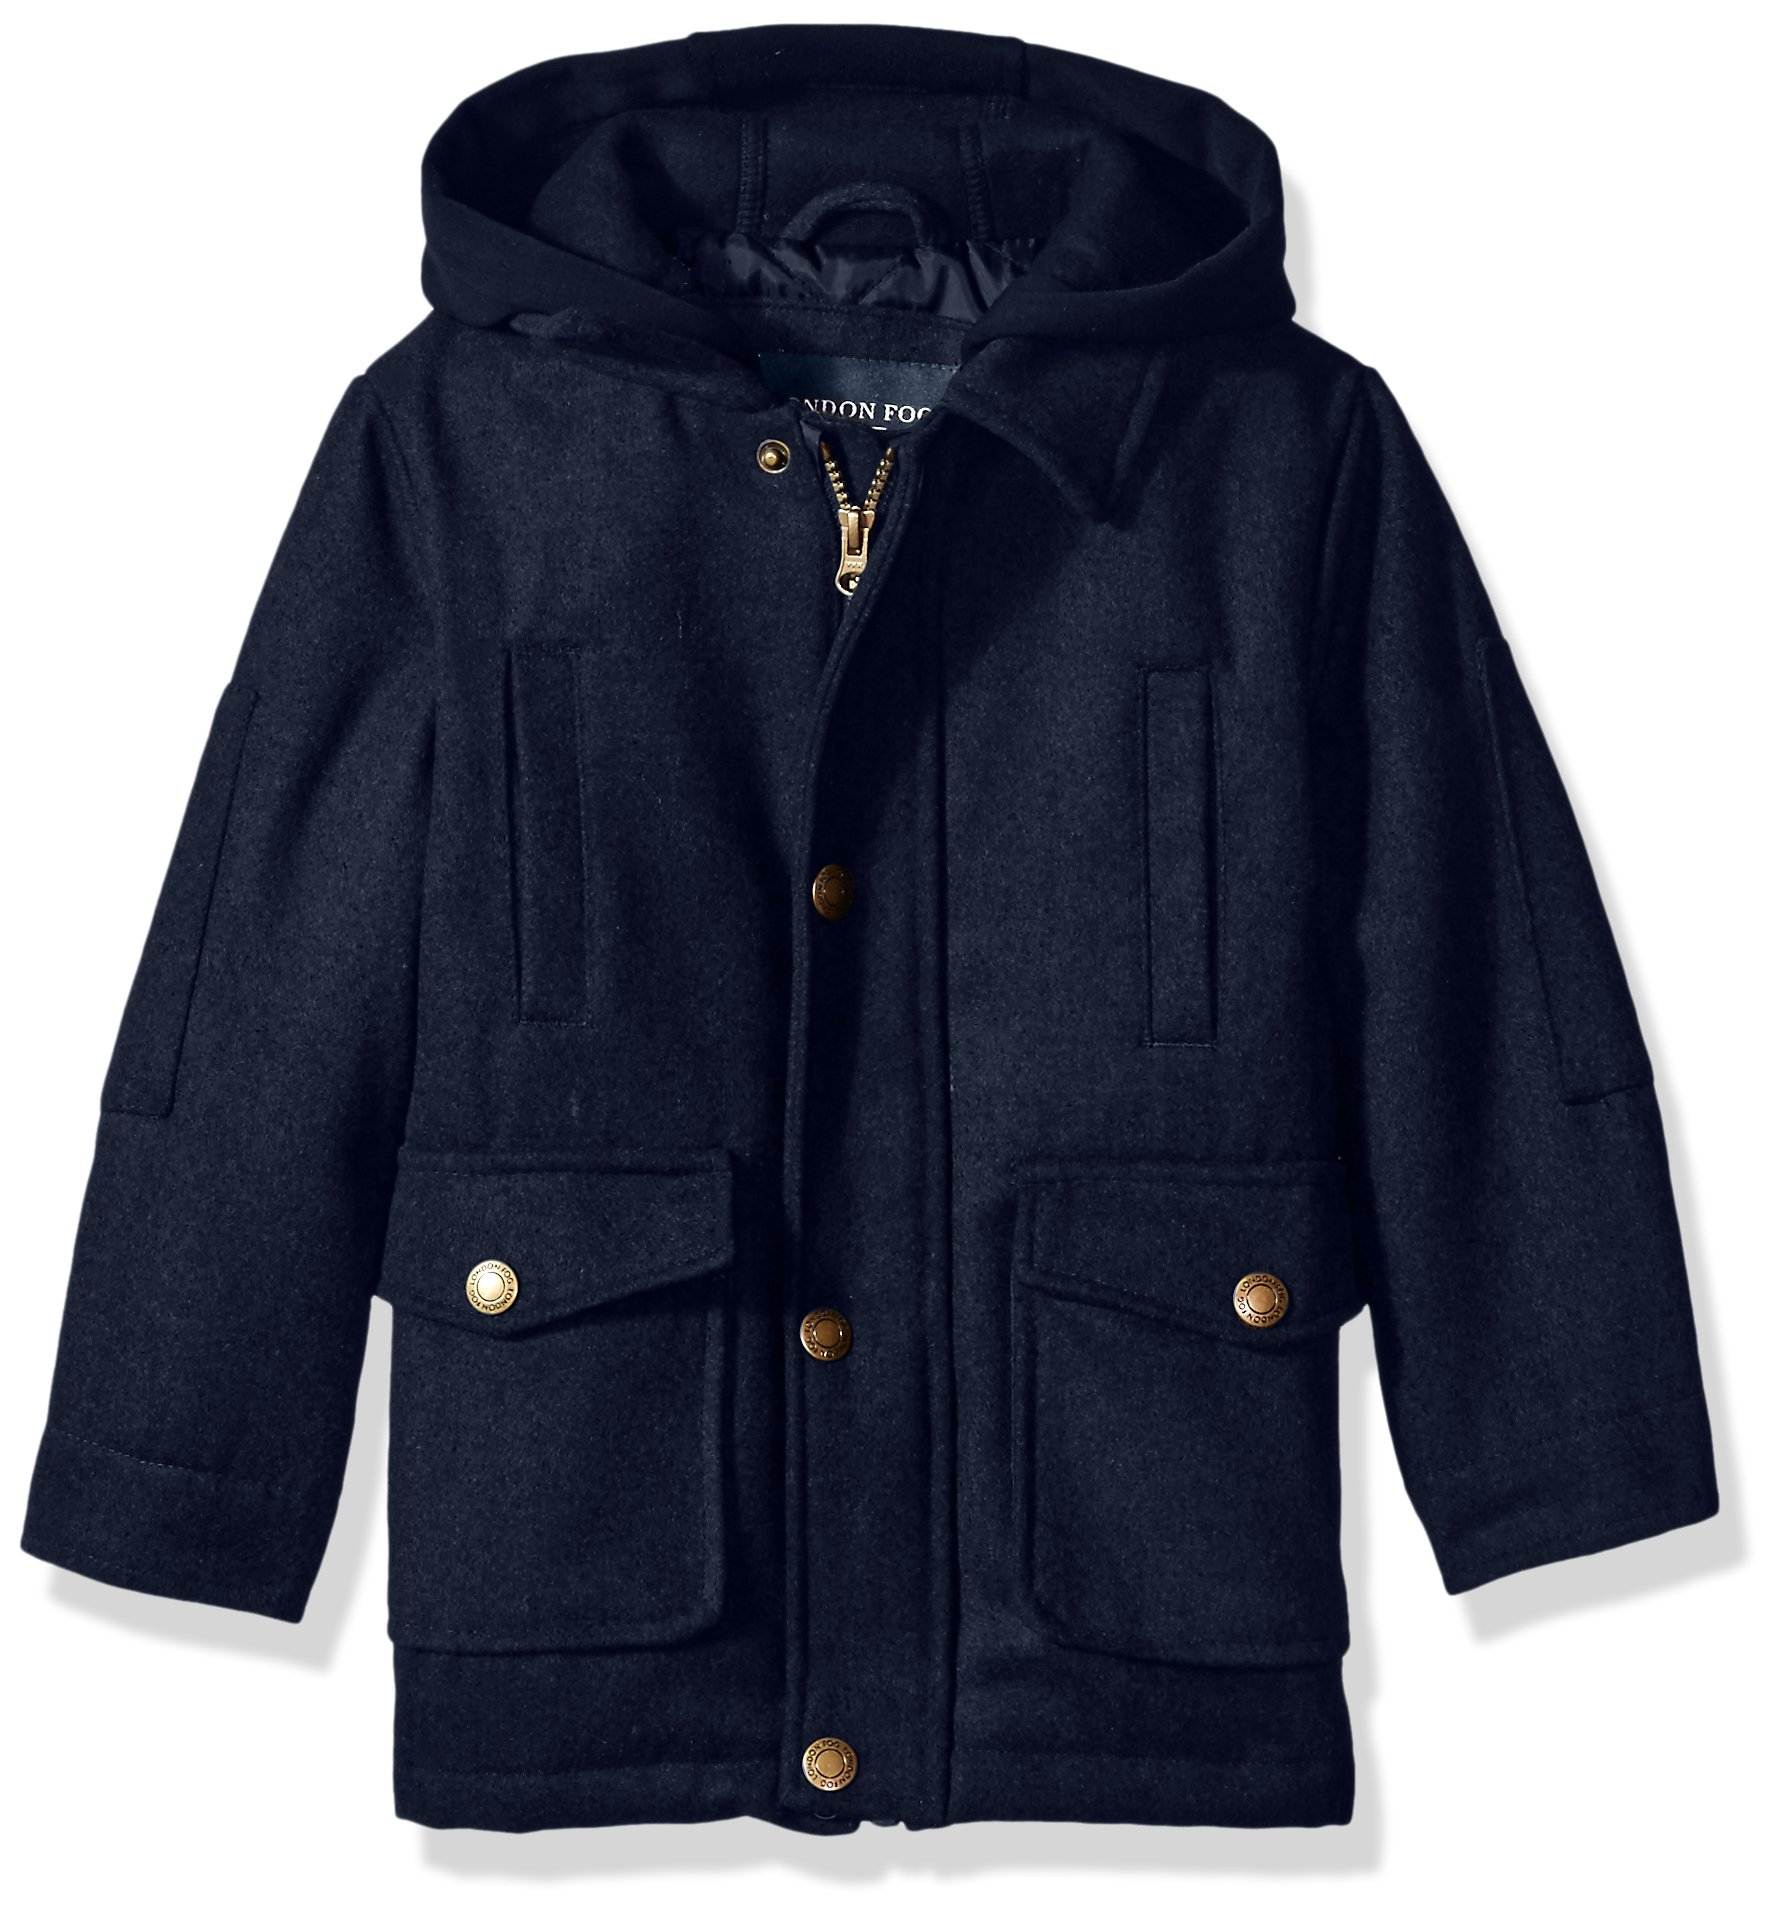 London Fog Little Boys' Faux Wool Coat With Hood, Navy, 7